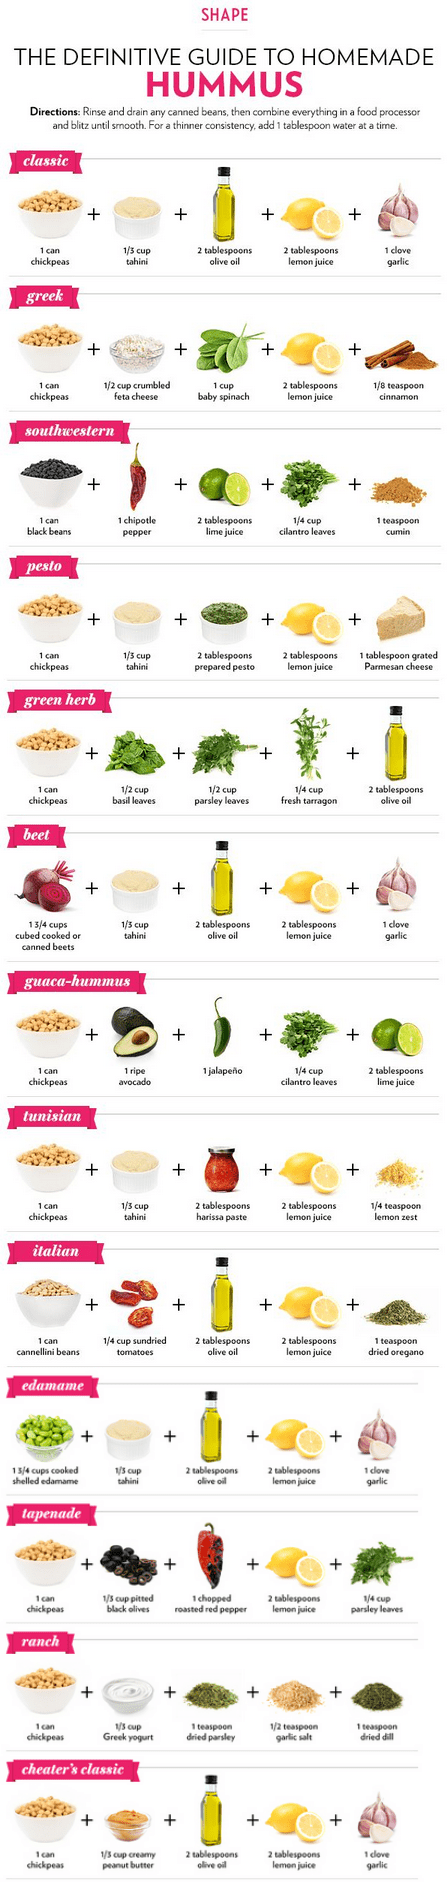 Chart,recipe,food,hummus